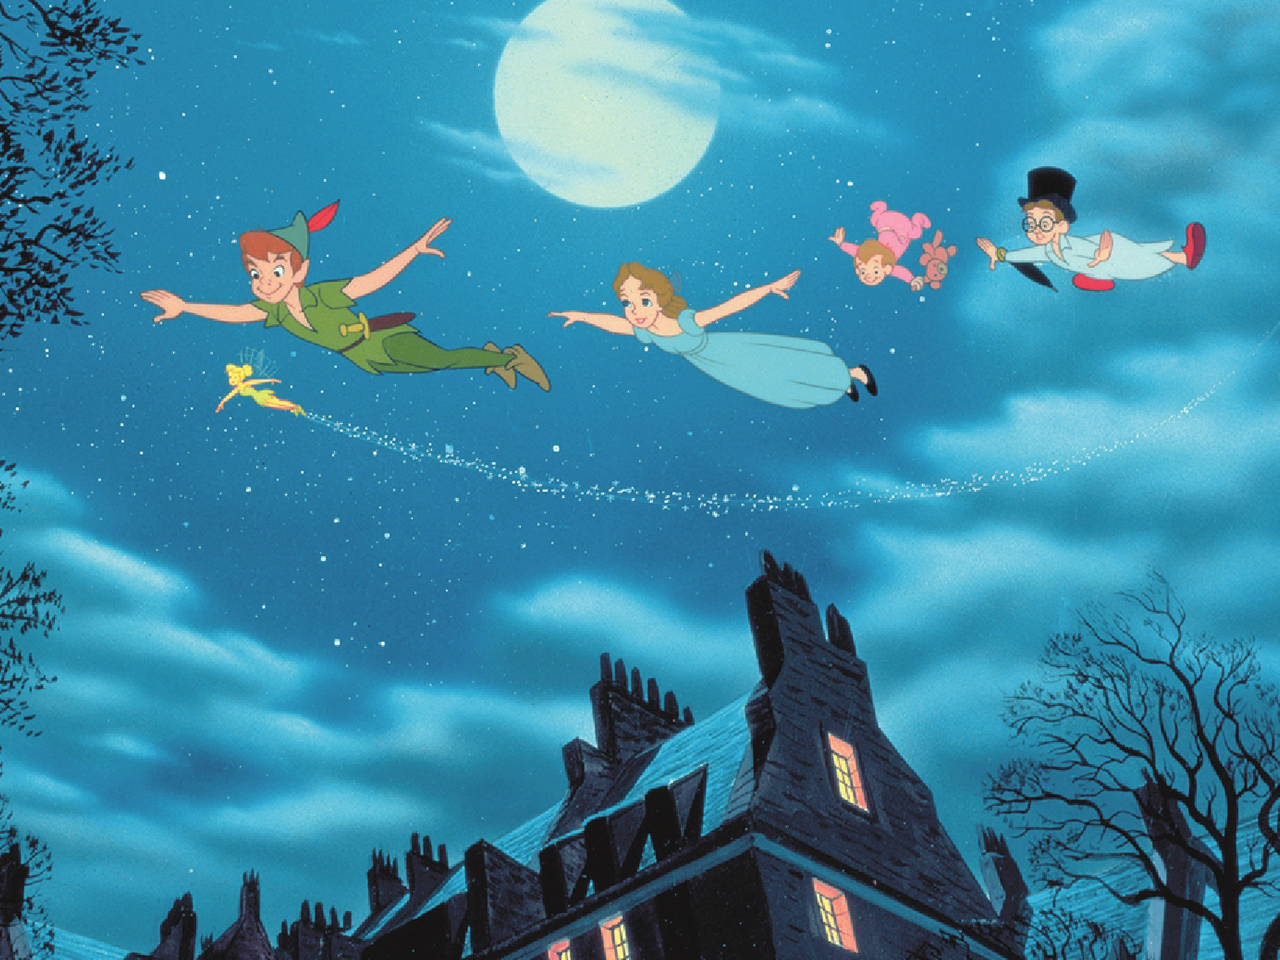 A still from the kids' animated movie Peter Pan